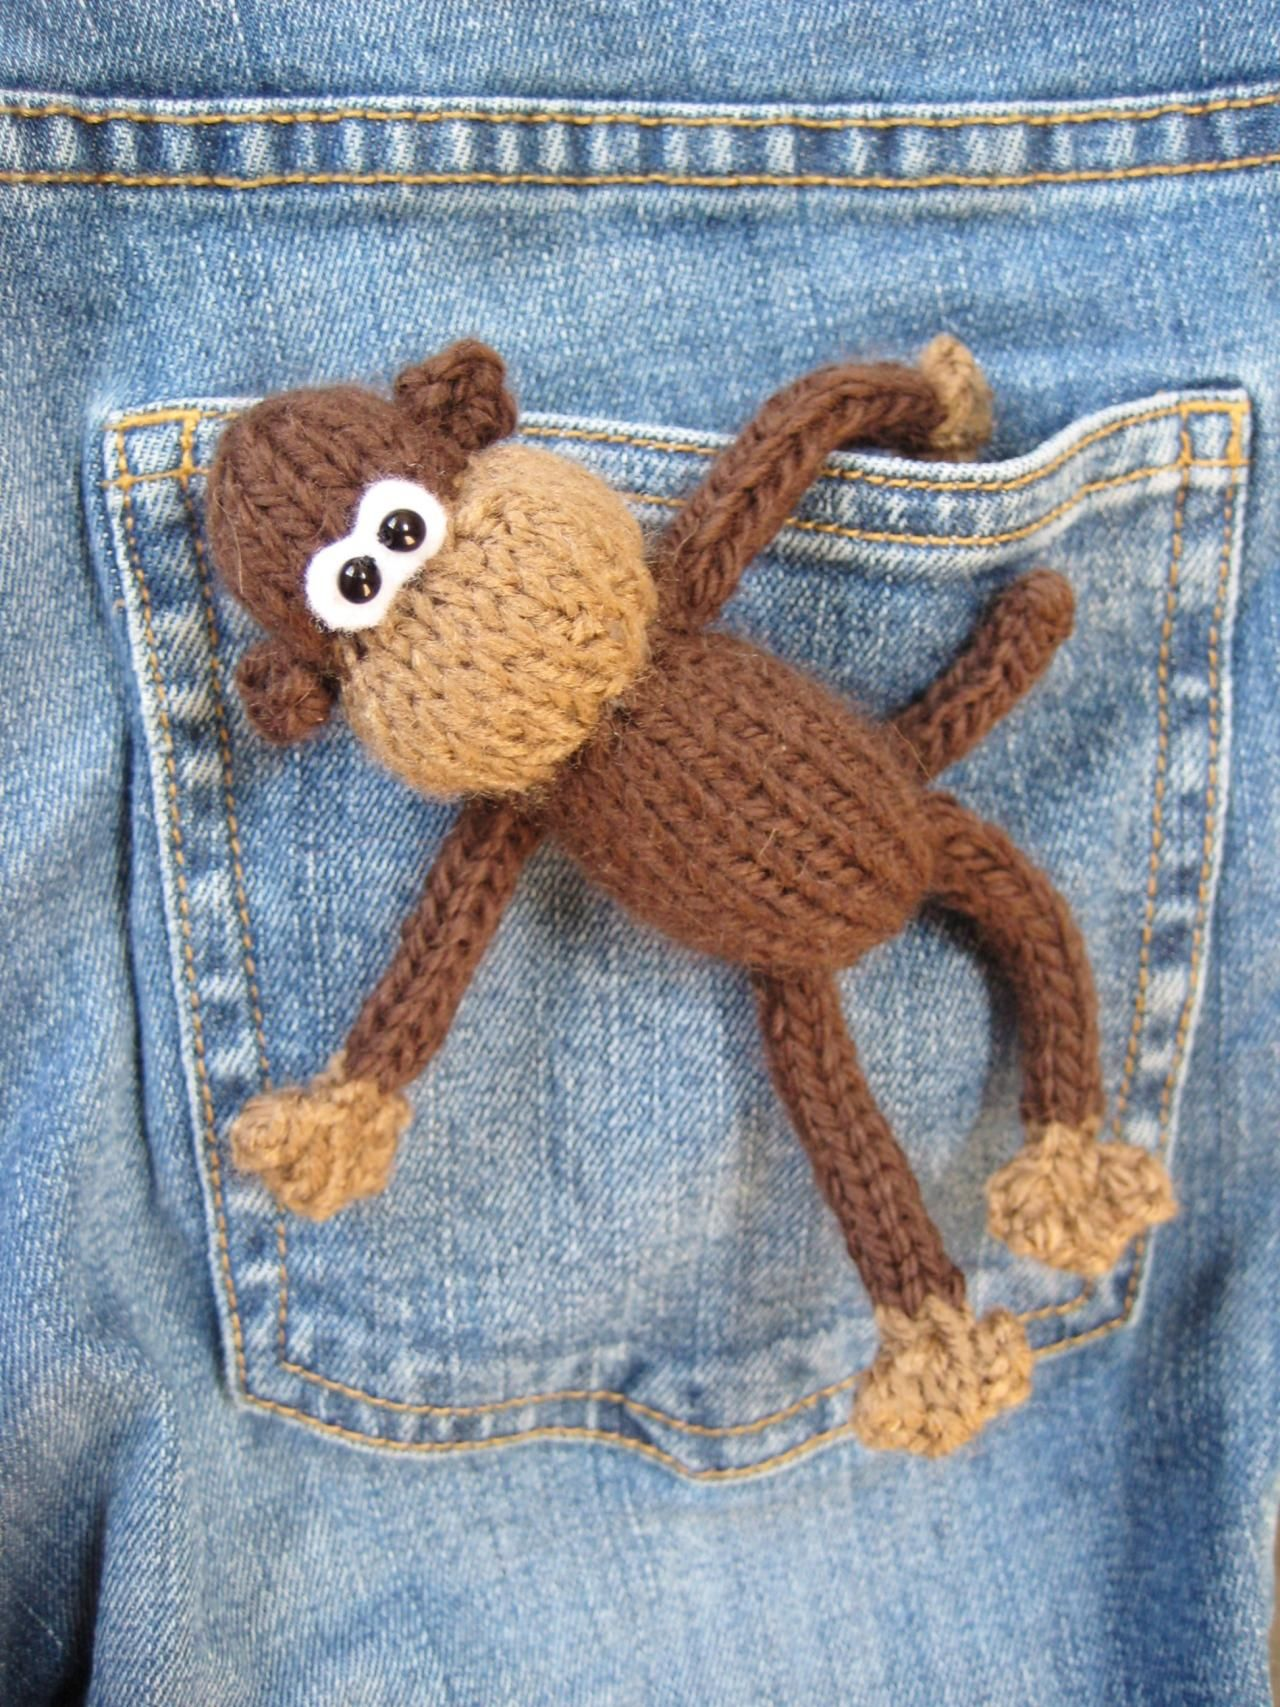 Pocket monkey mini toy knitting pattern for sale knitting love pocket monkey mini toy knitting pattern for sale bankloansurffo Images